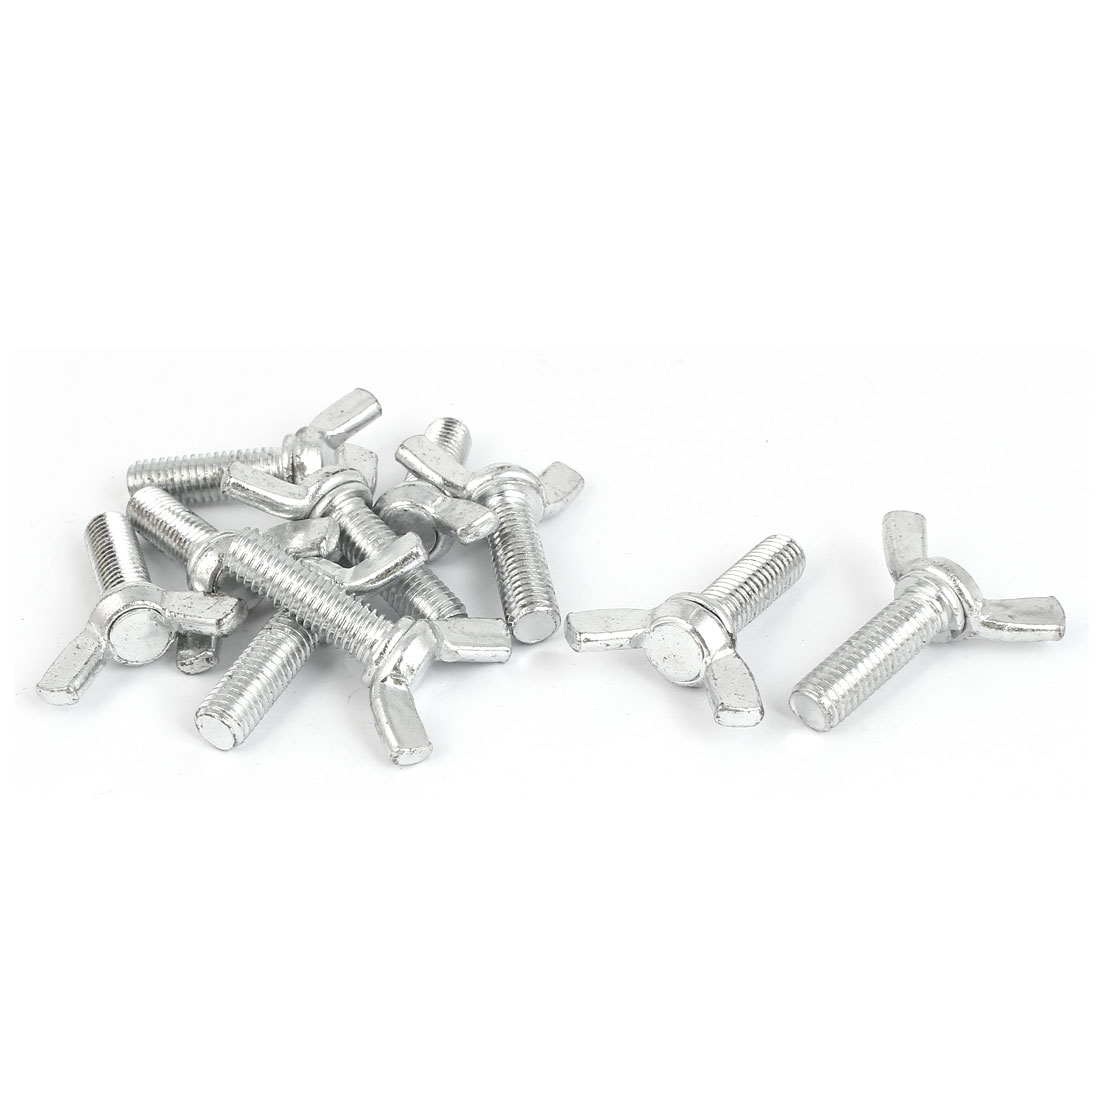 10pcs Metric M8x25mm 1.25mm Pitch Carbon Steel Wing Bolt Butterfly Screw